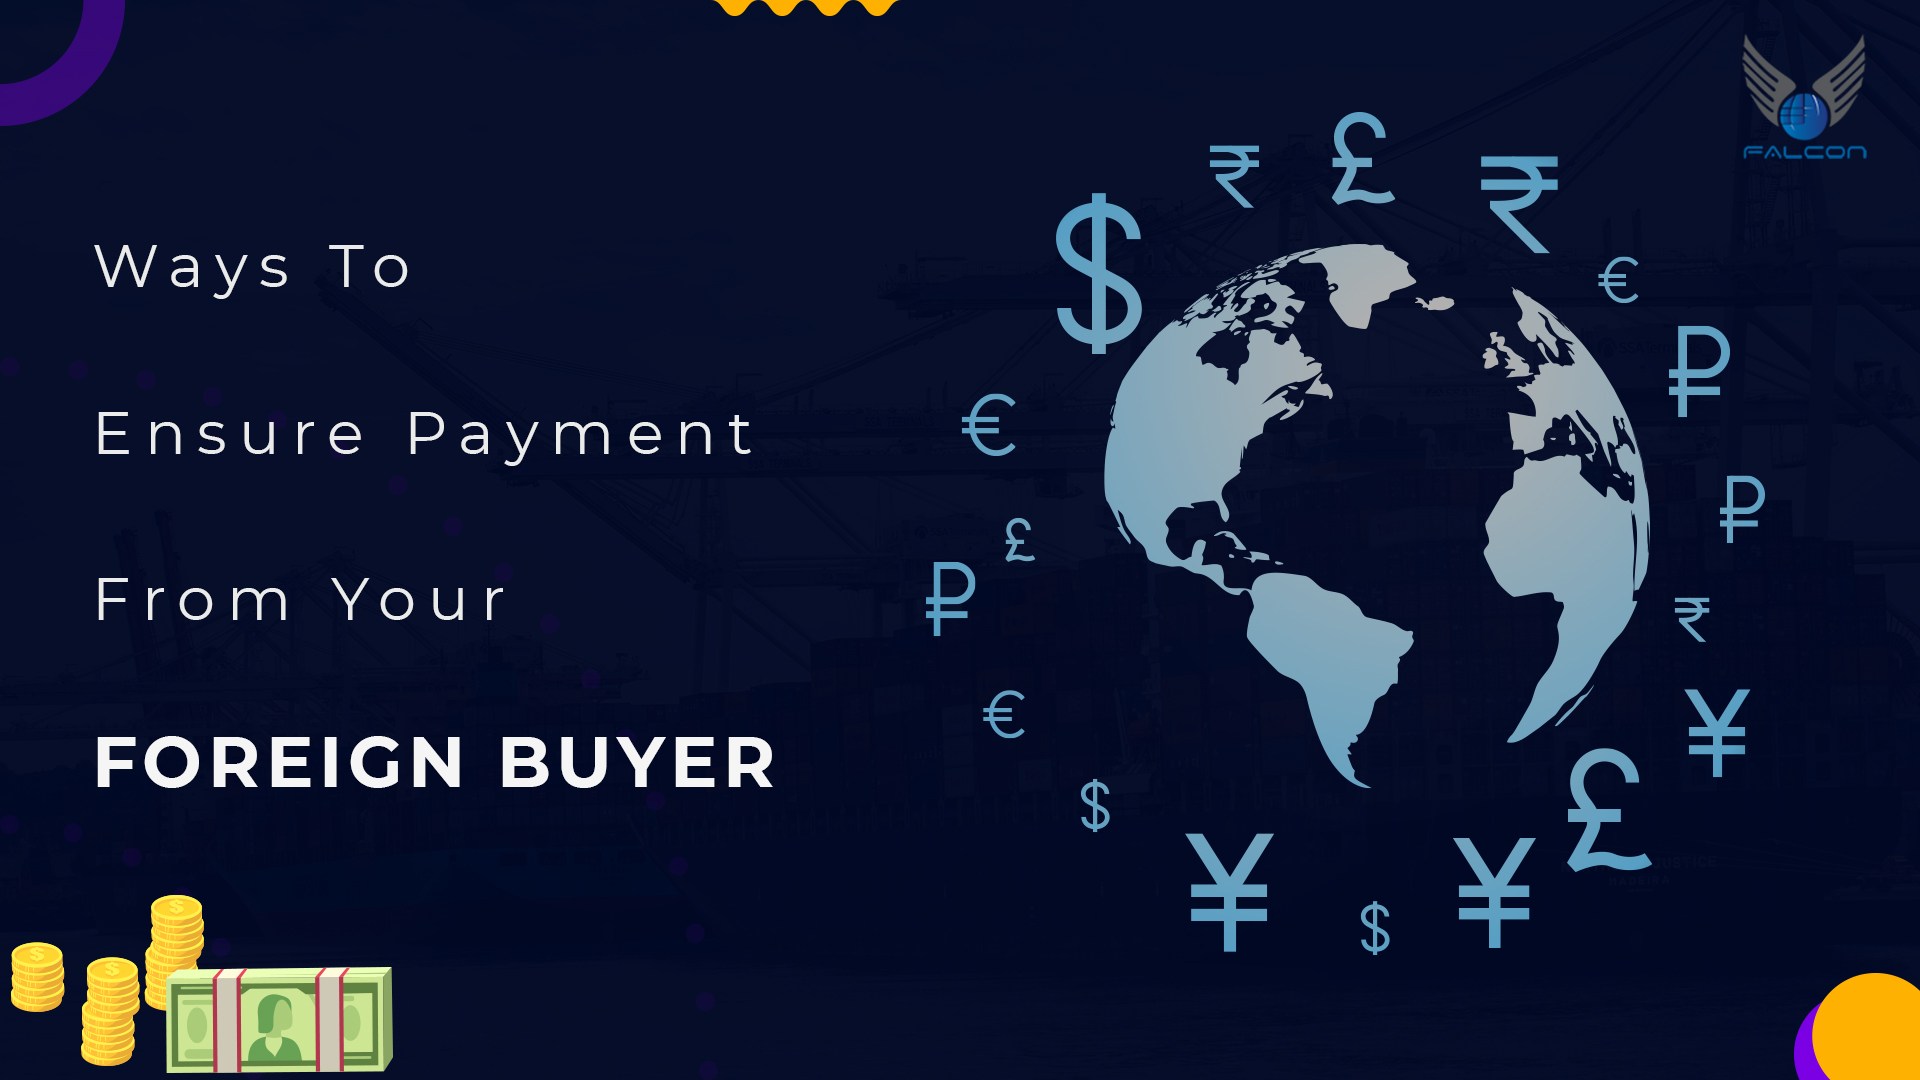 Make sure your foreign buyers pay you.